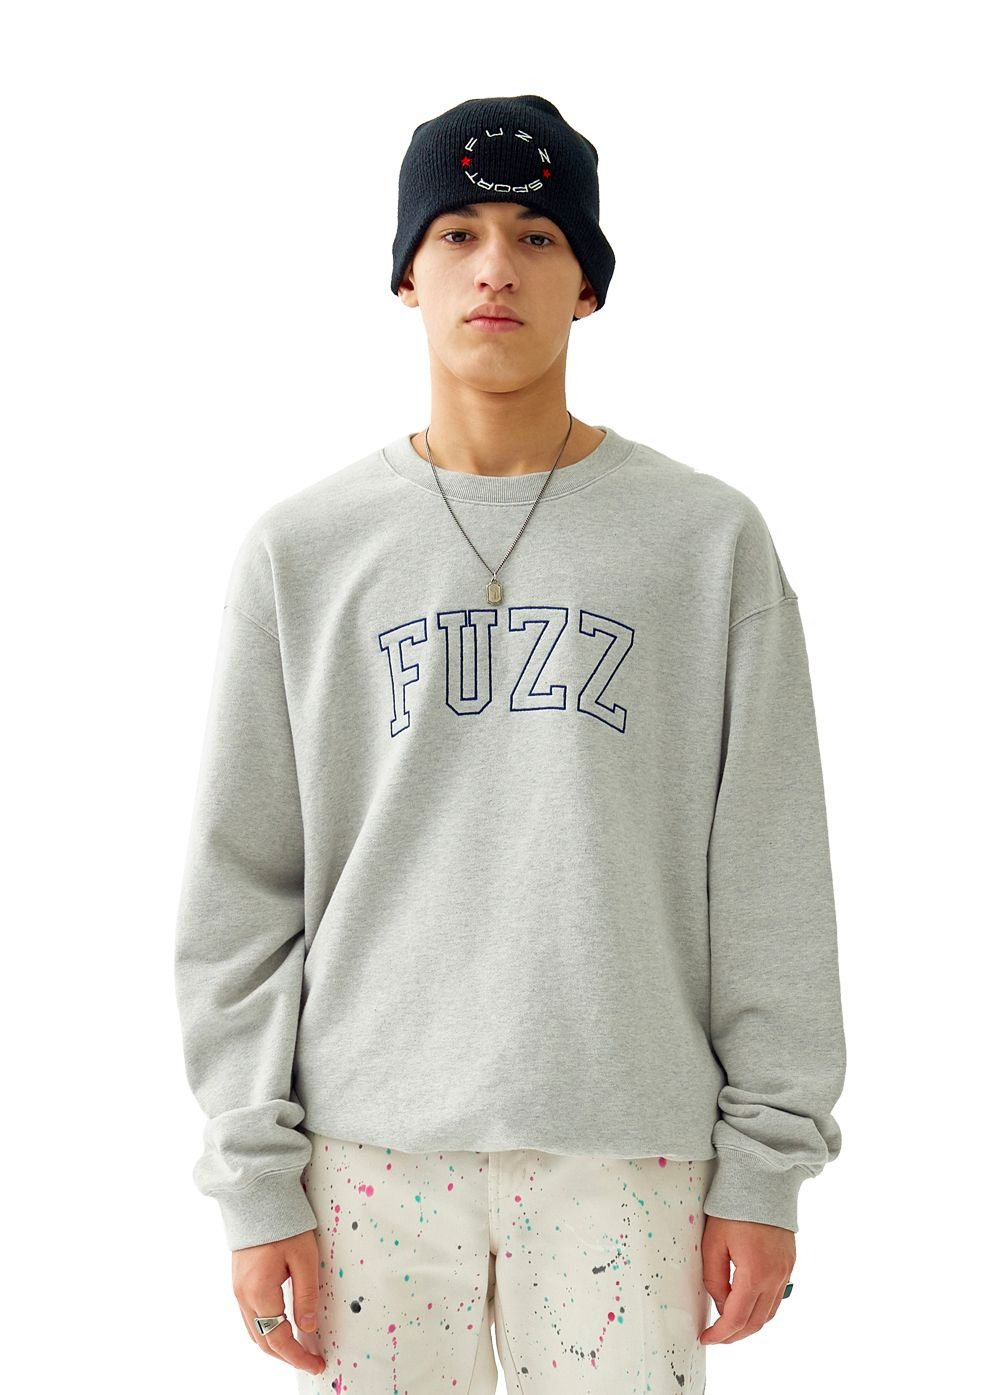 FUZZ COLLEGE ARCH LOGO SWEATSHIRT heather gray